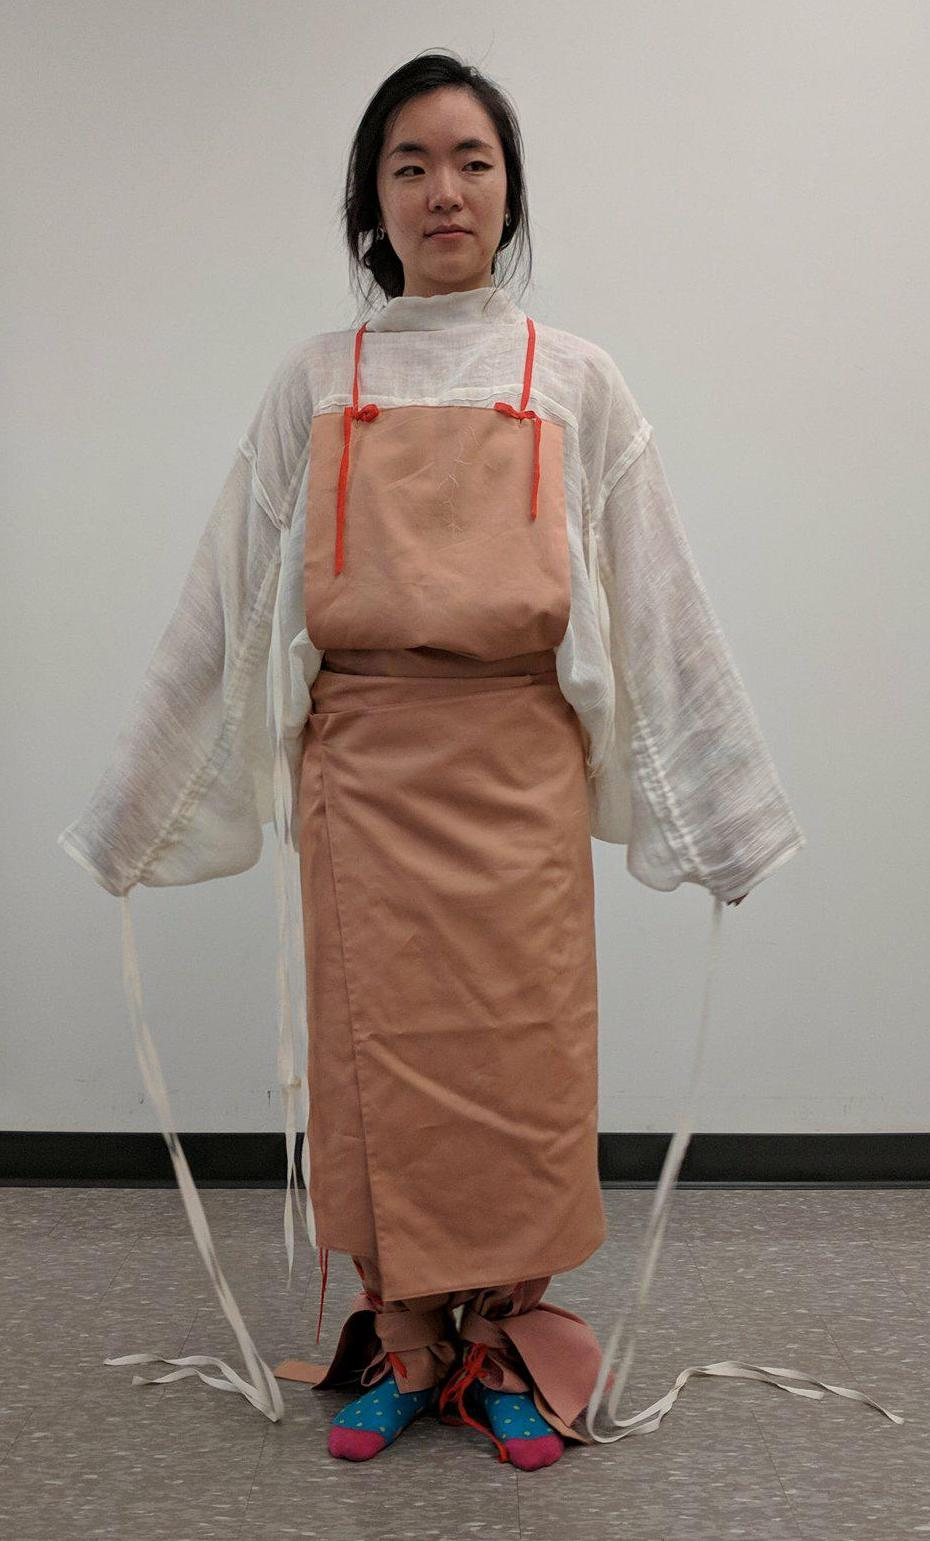 With Apron Tied to Front